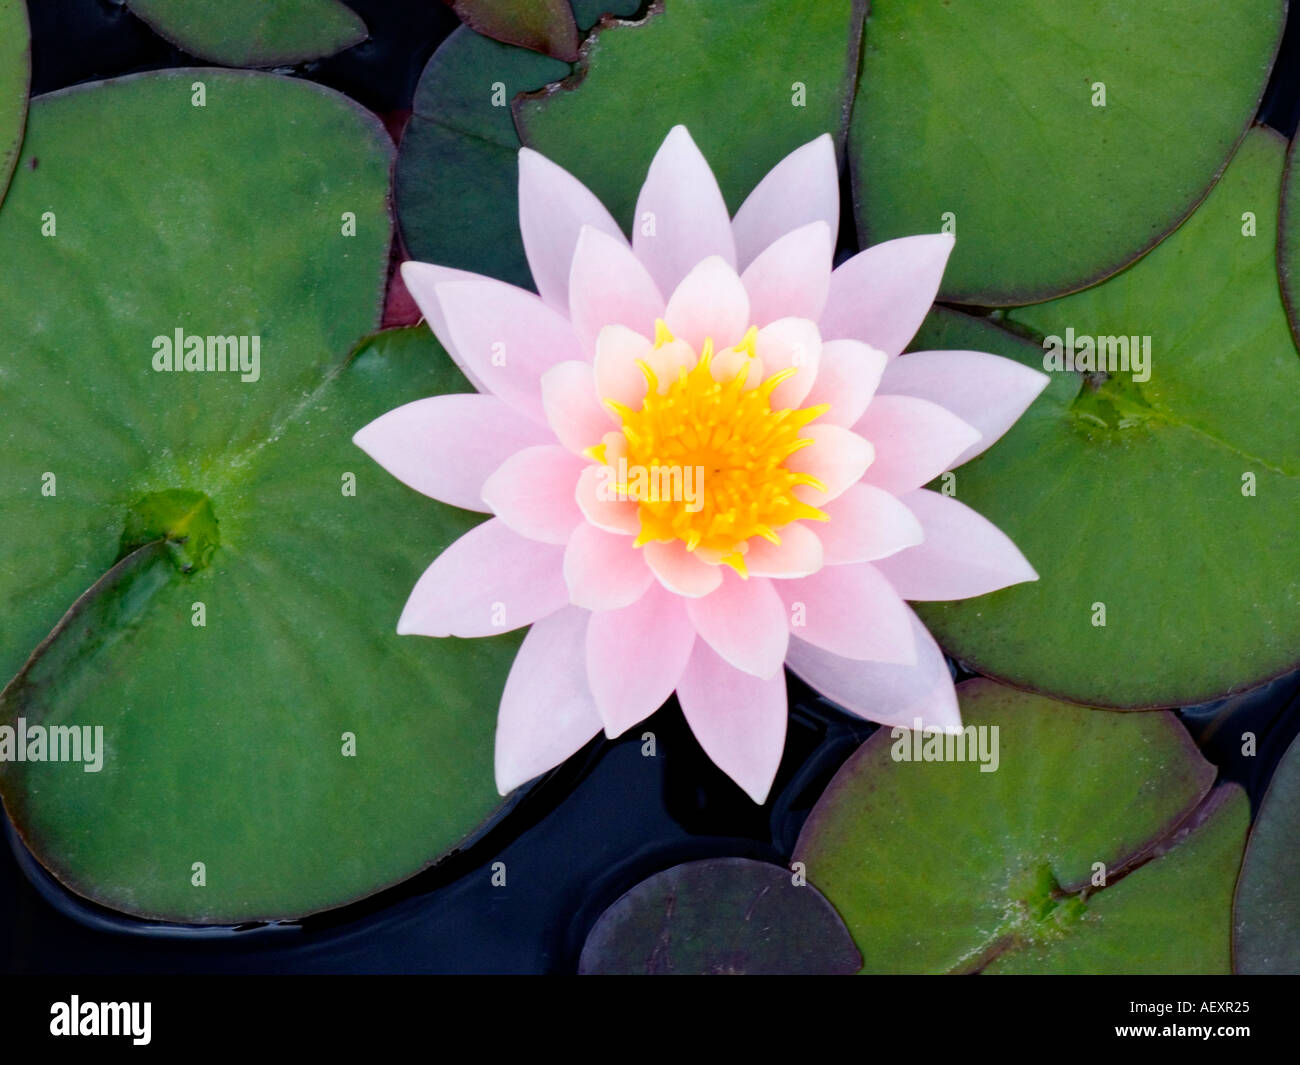 Water lily lilies in pond pool water wild flower abstract concept water lily lilies in pond pool water wild flower abstract concept idea background ecology ecosystem environment nature natural b izmirmasajfo